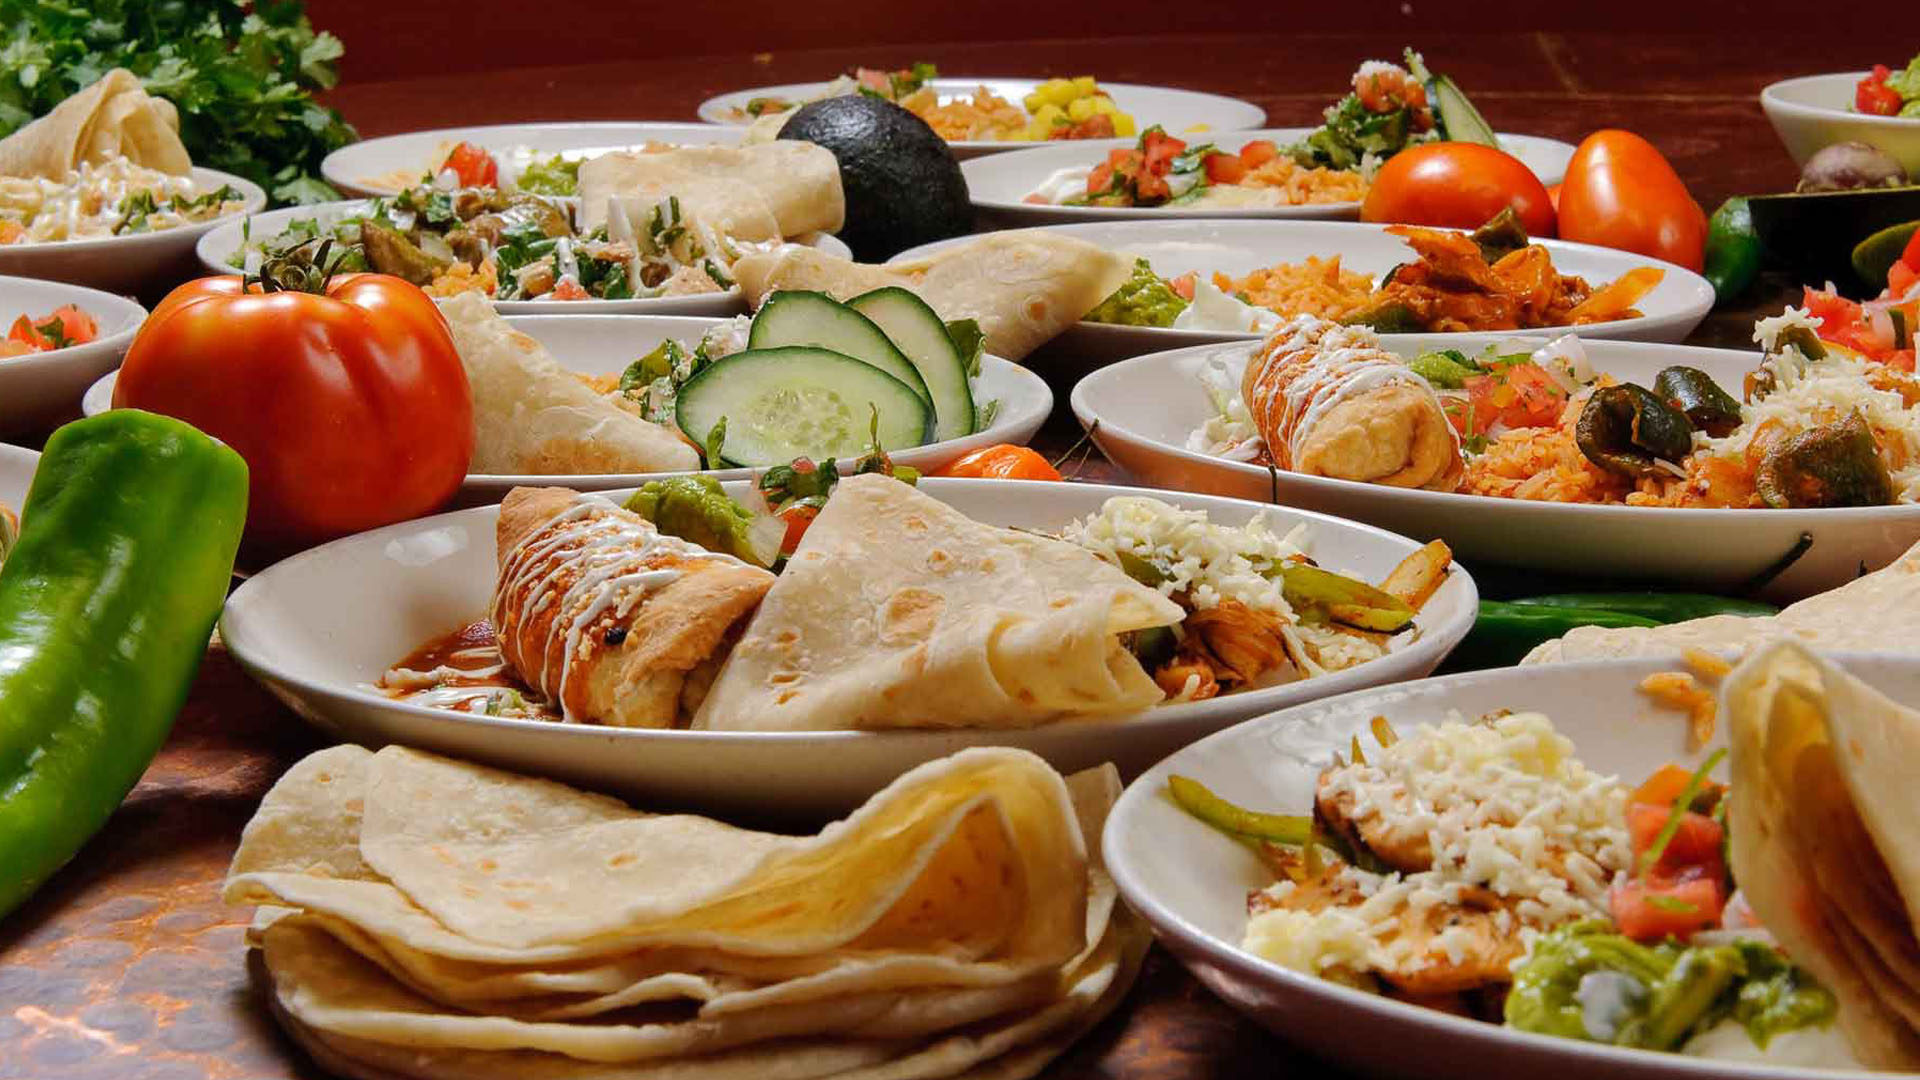 Graz'n Gourmet offers its party catering services for large and   small events